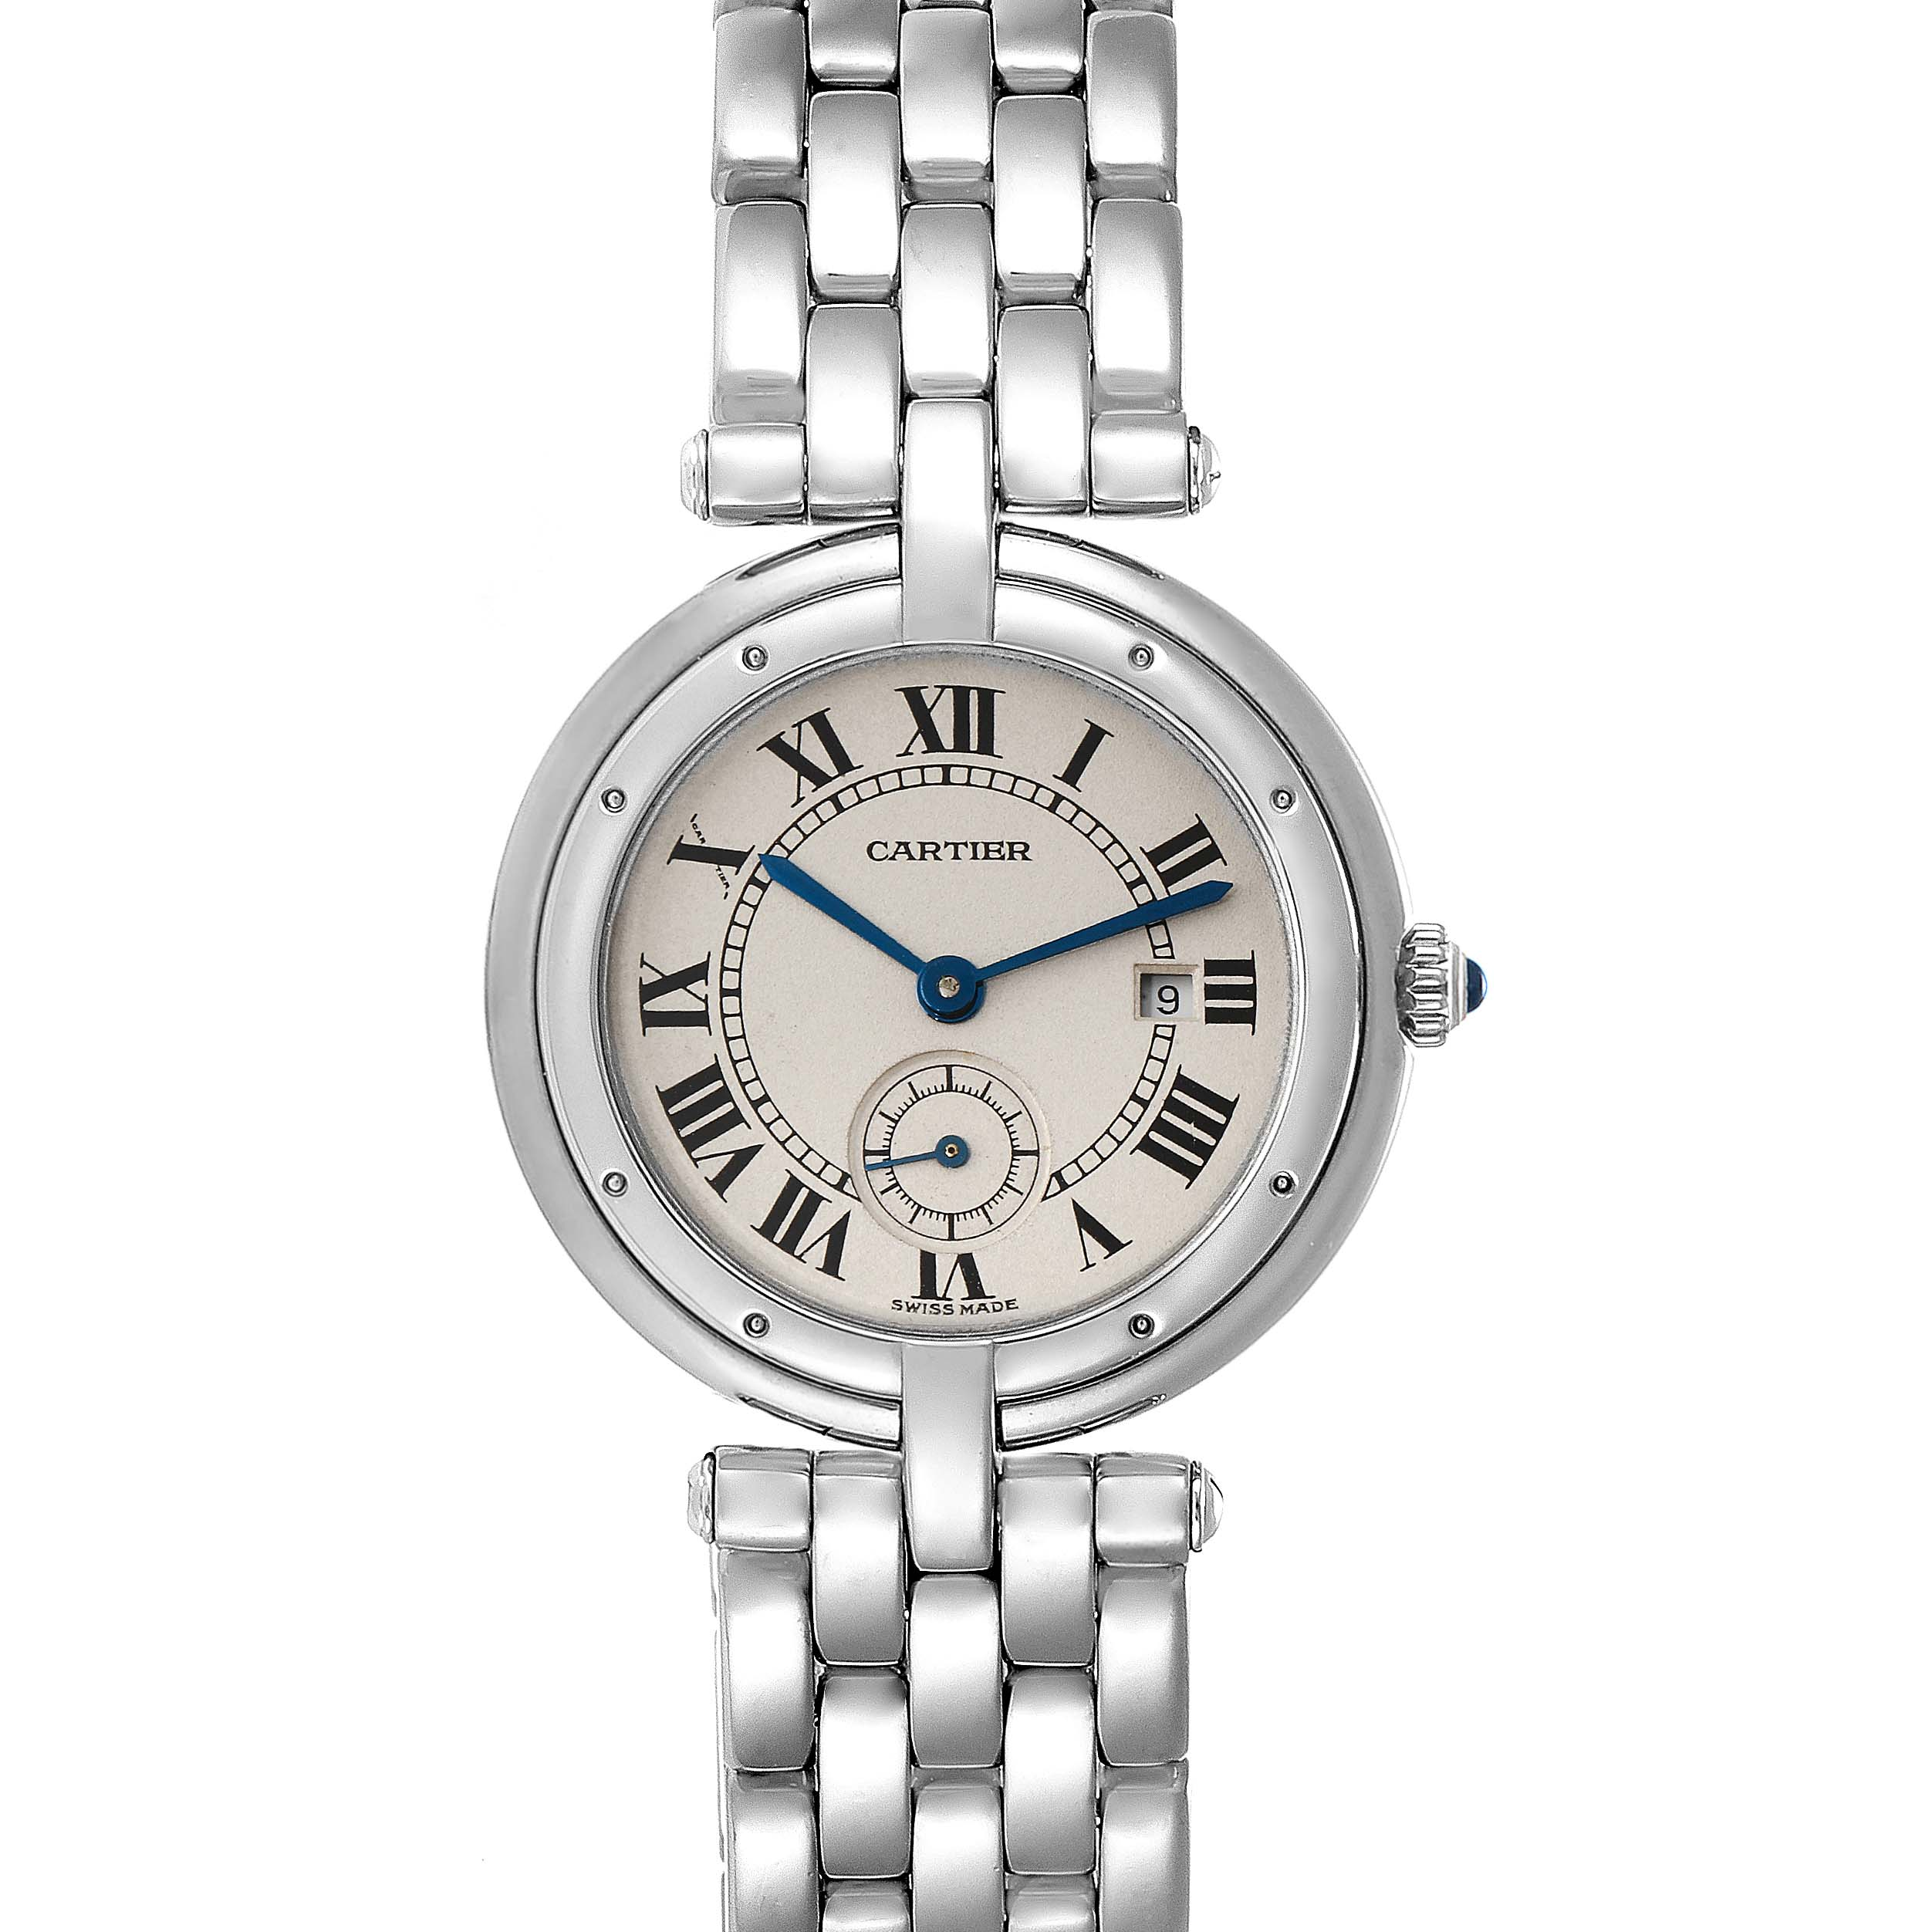 Cartier Panthere Vendome 18K White Gold Ladies Watch 0092